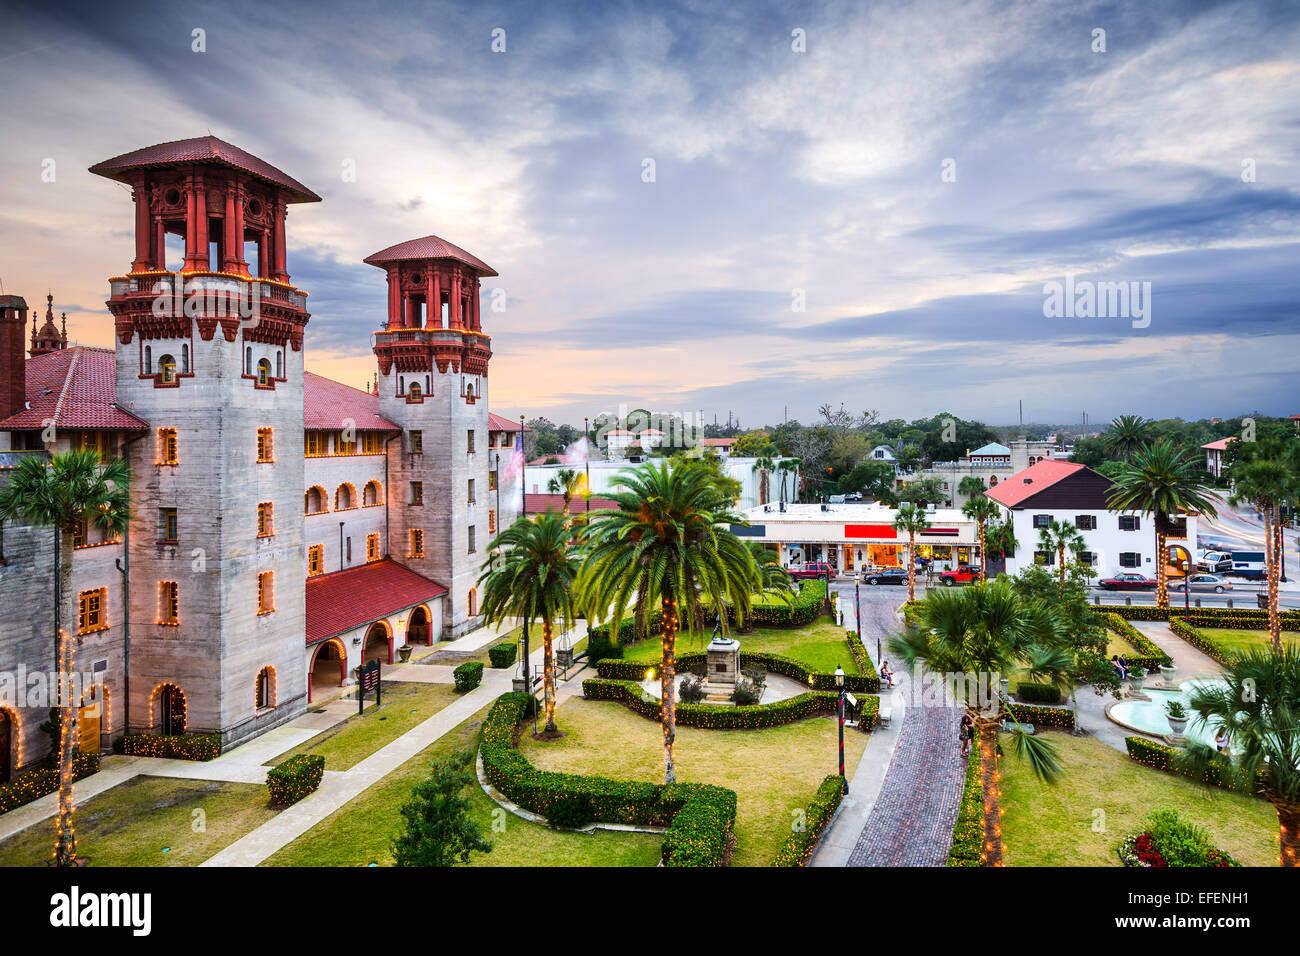 St. Augustine, Florida, USA town view at city hall and Alcazar plaza. - Stock Image